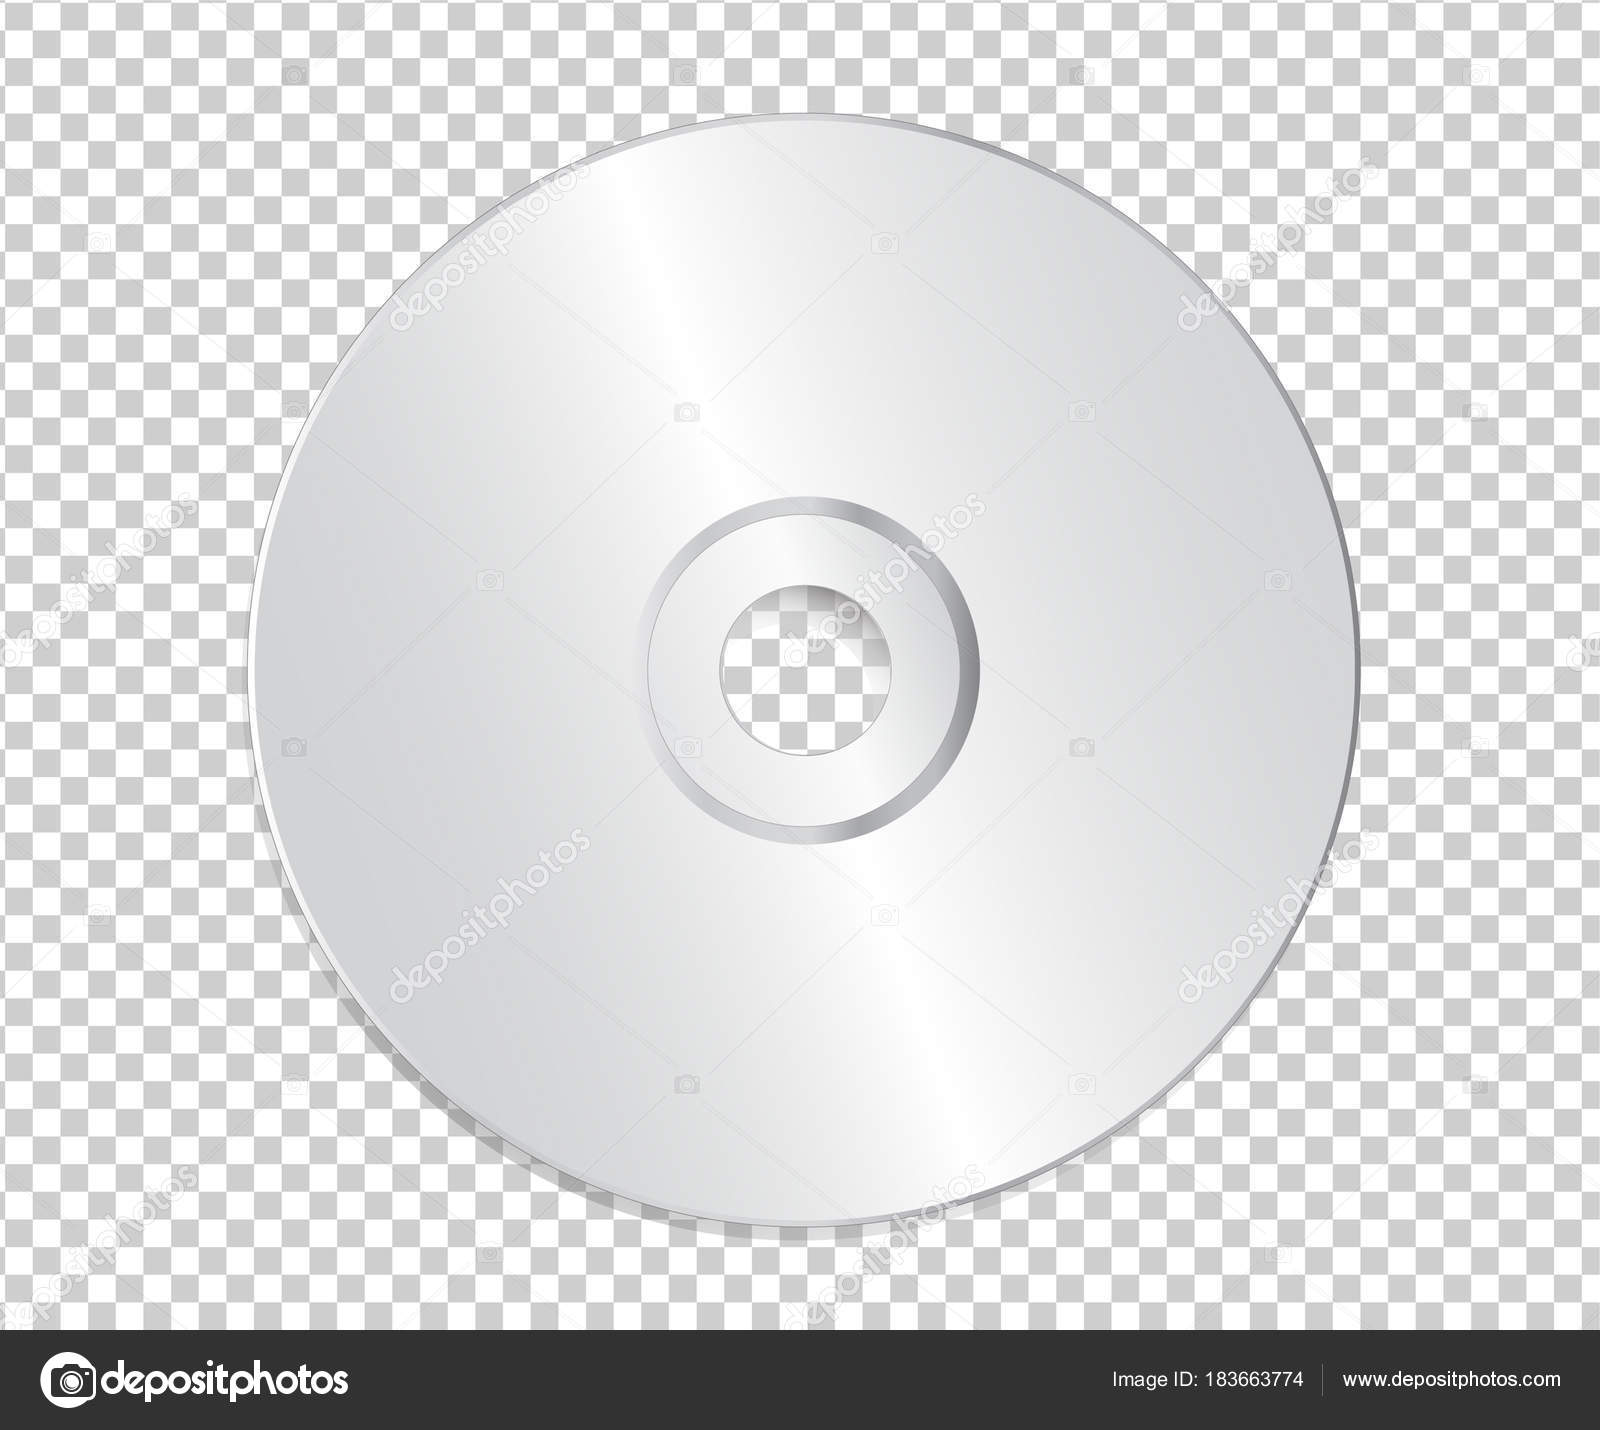 blank cd template on transparent background with shadow vector